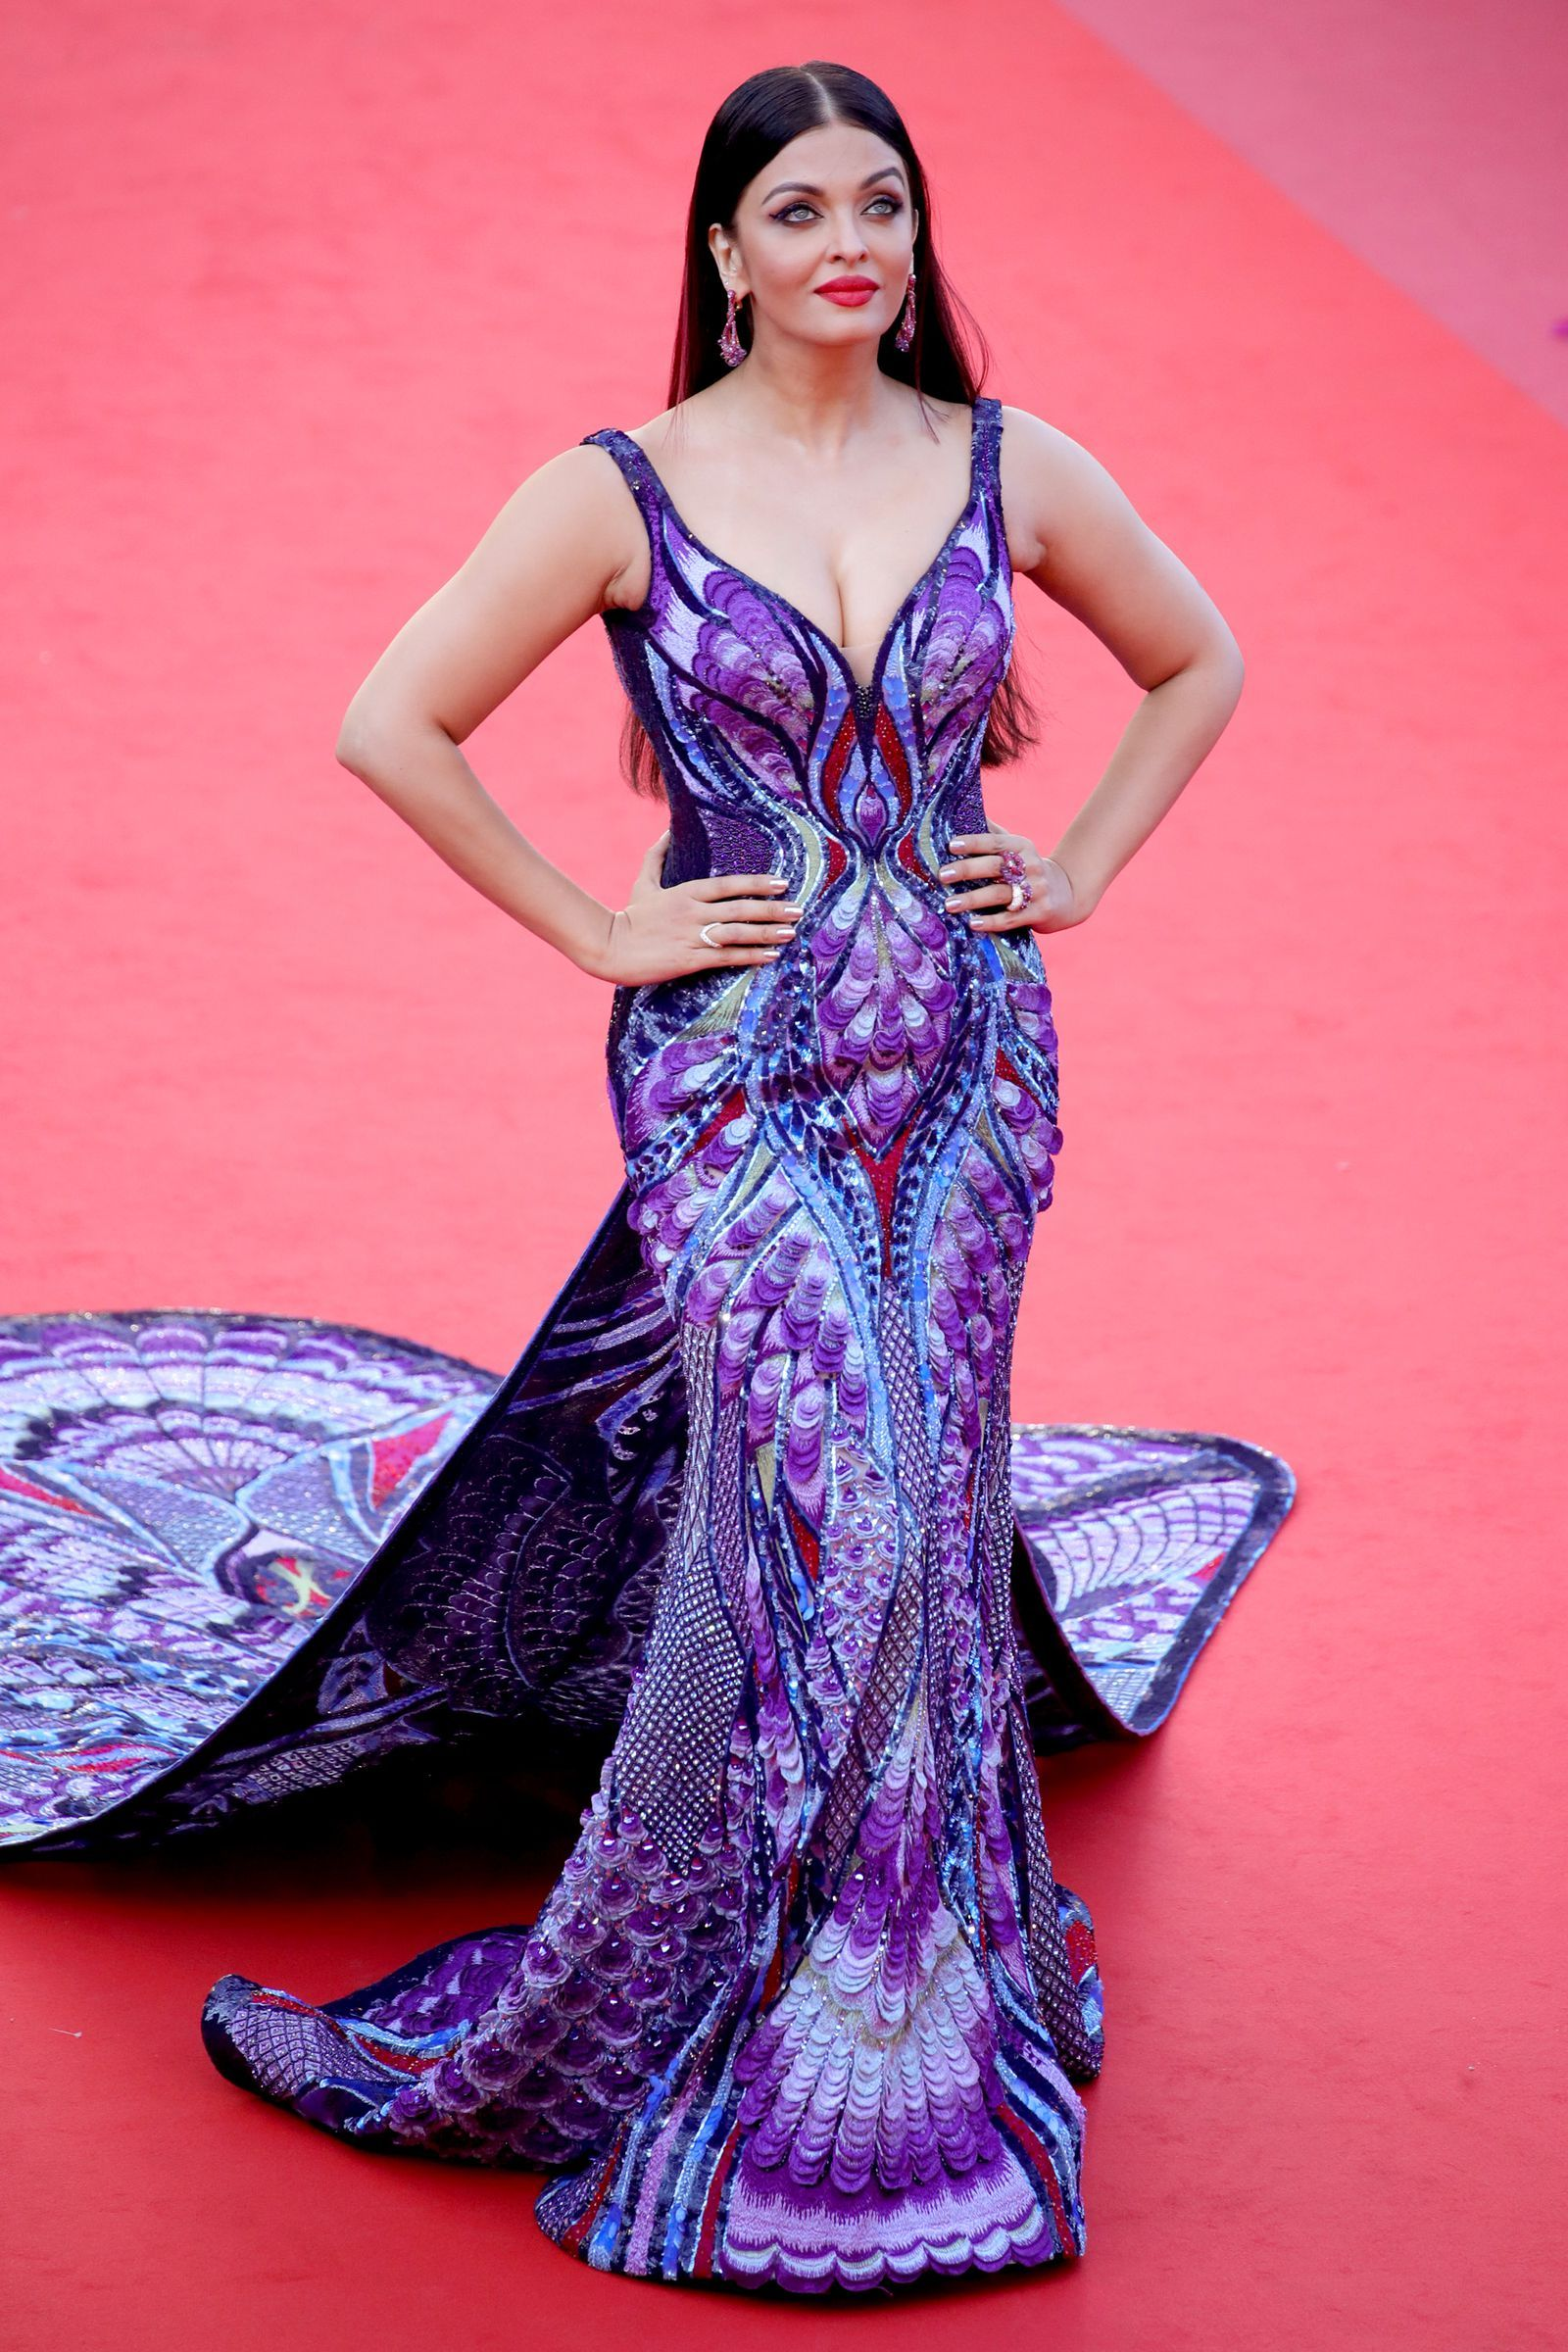 ec7ba5bcd71 Aishwarya Rai s Butterfly Dress at Cannes Took 3